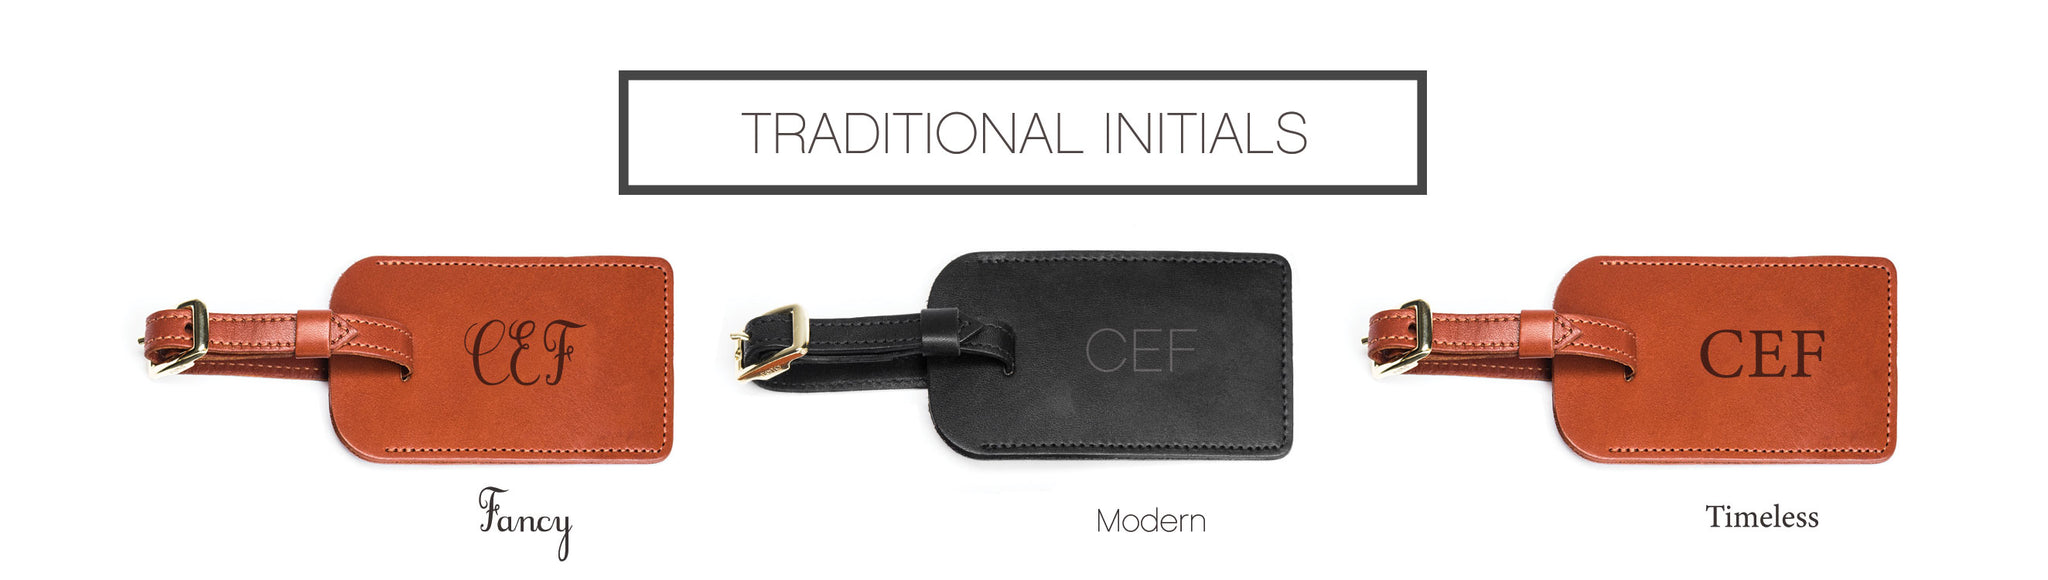 Luggage Tag Initials Personalization Options